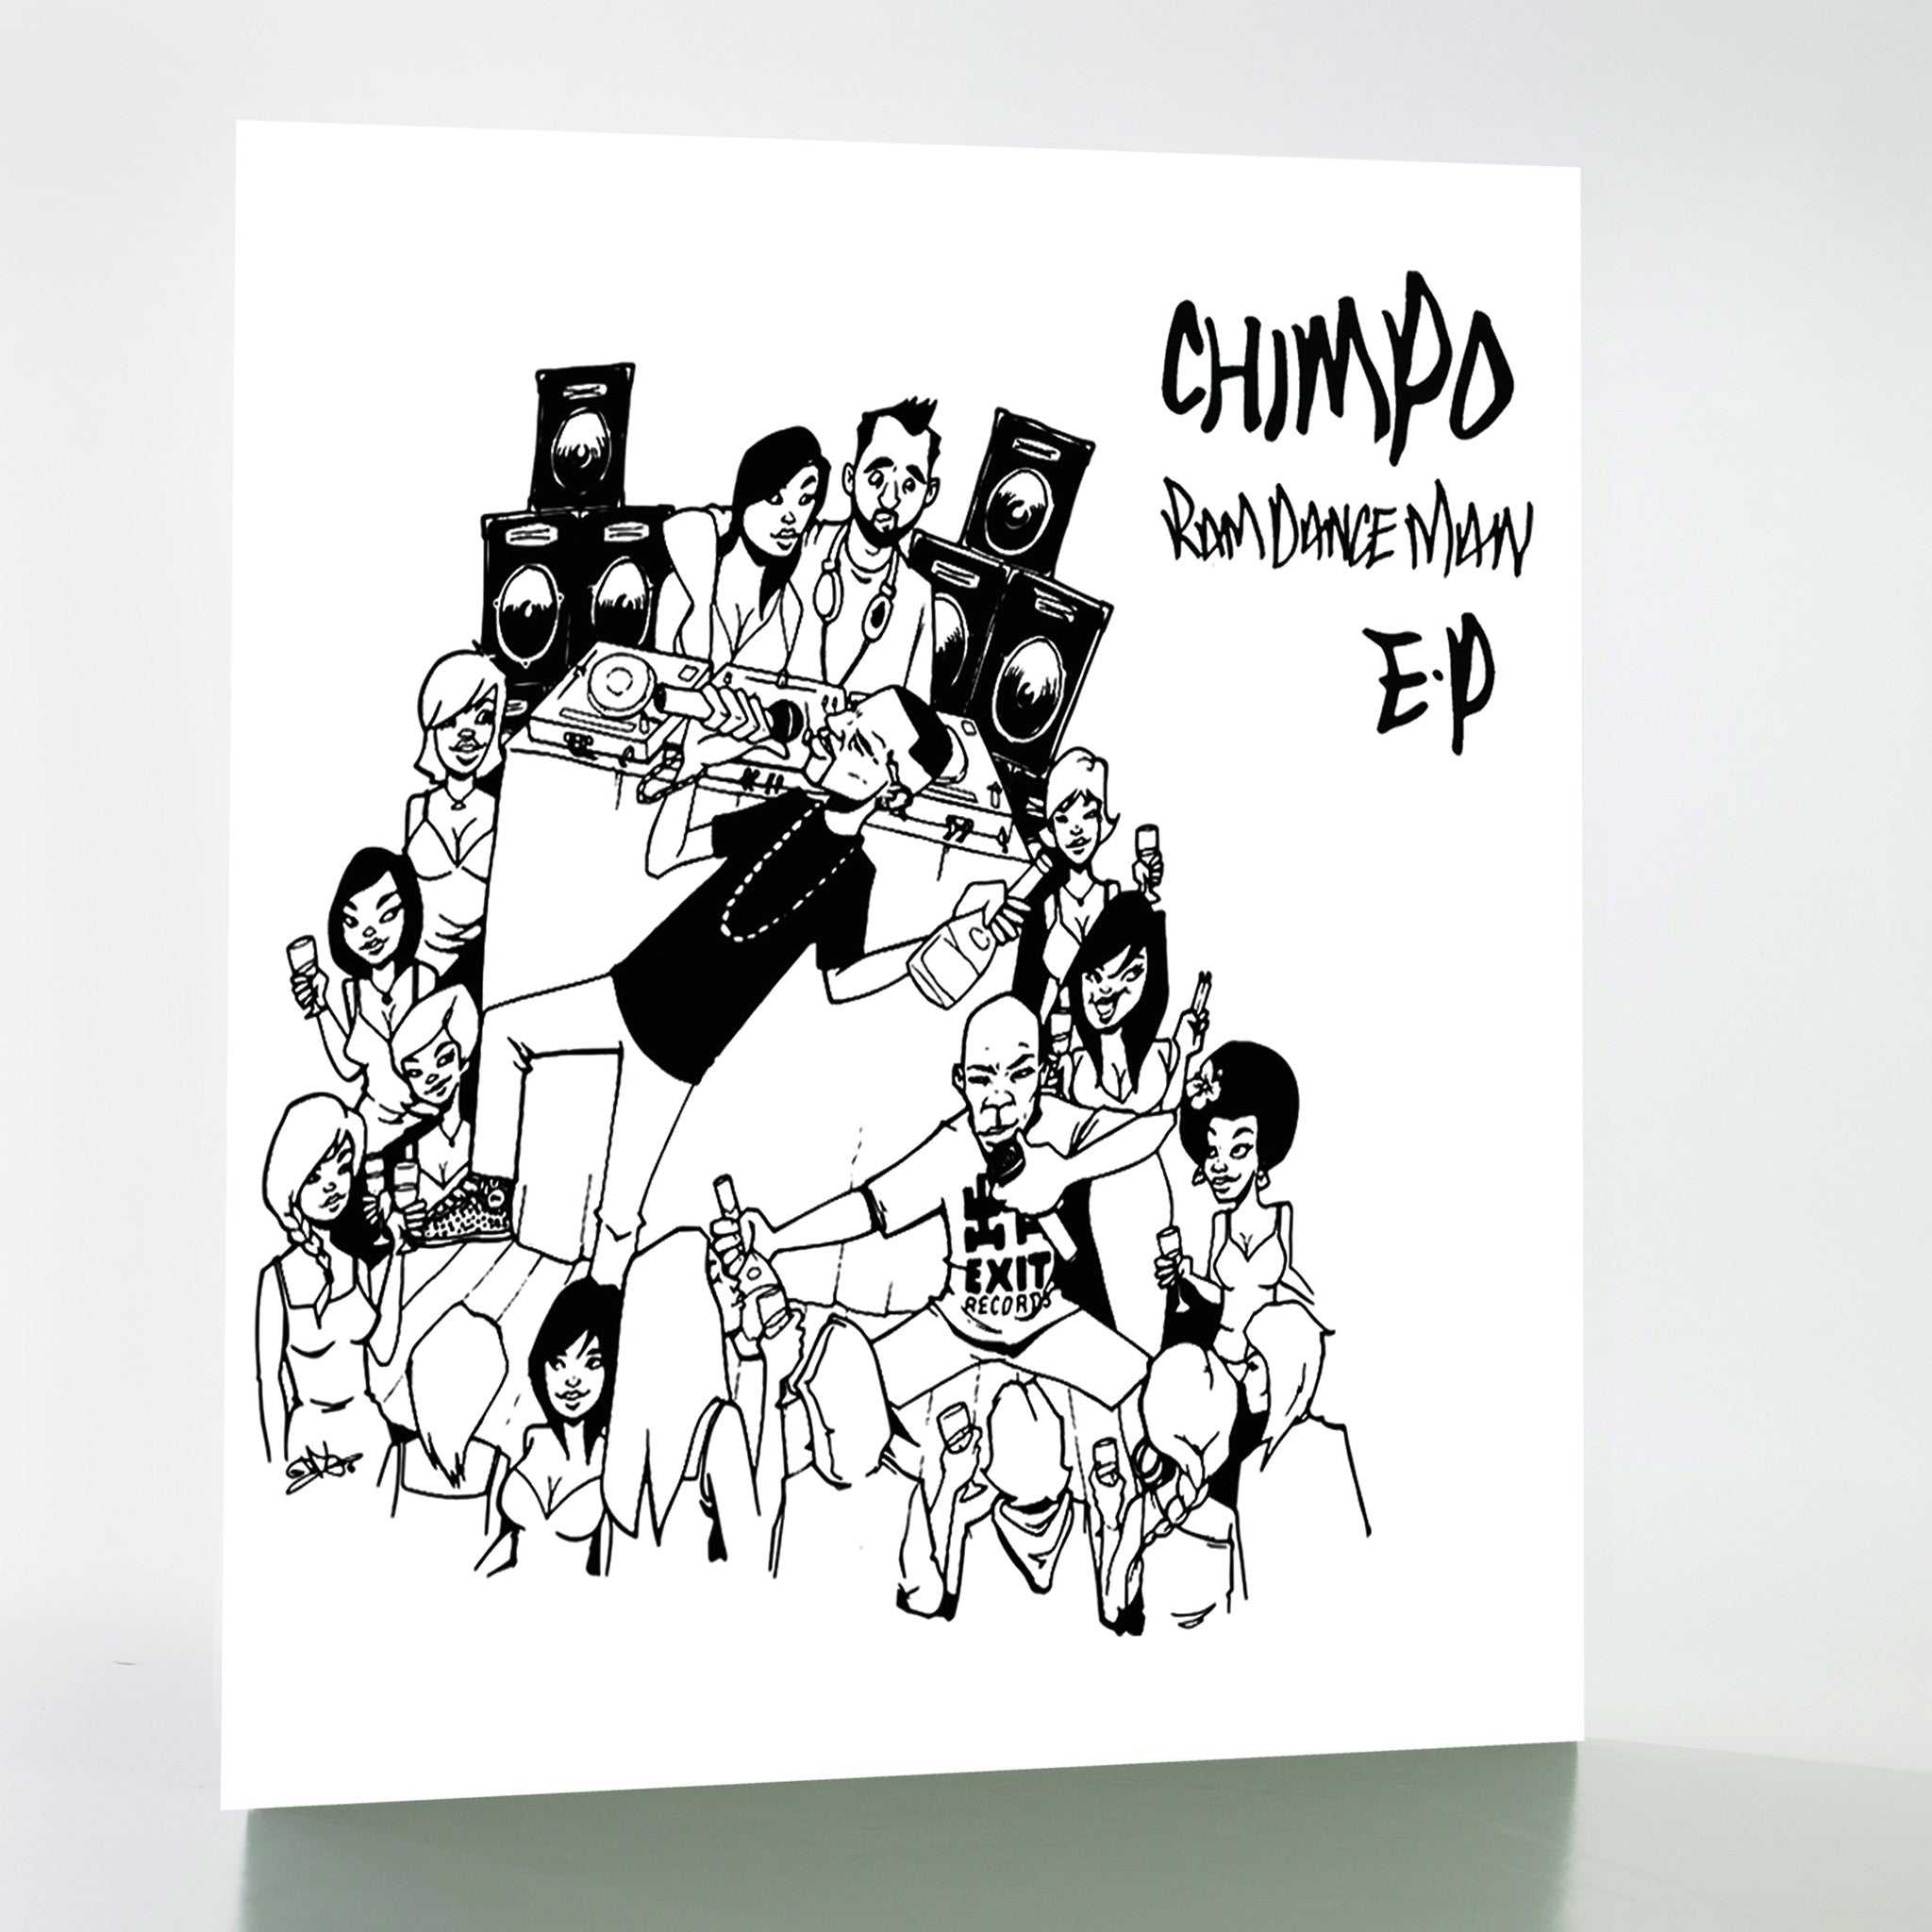 Chimpo - Ram Dance Man EP , Vinyl - Exit Records, Unearthed Sounds